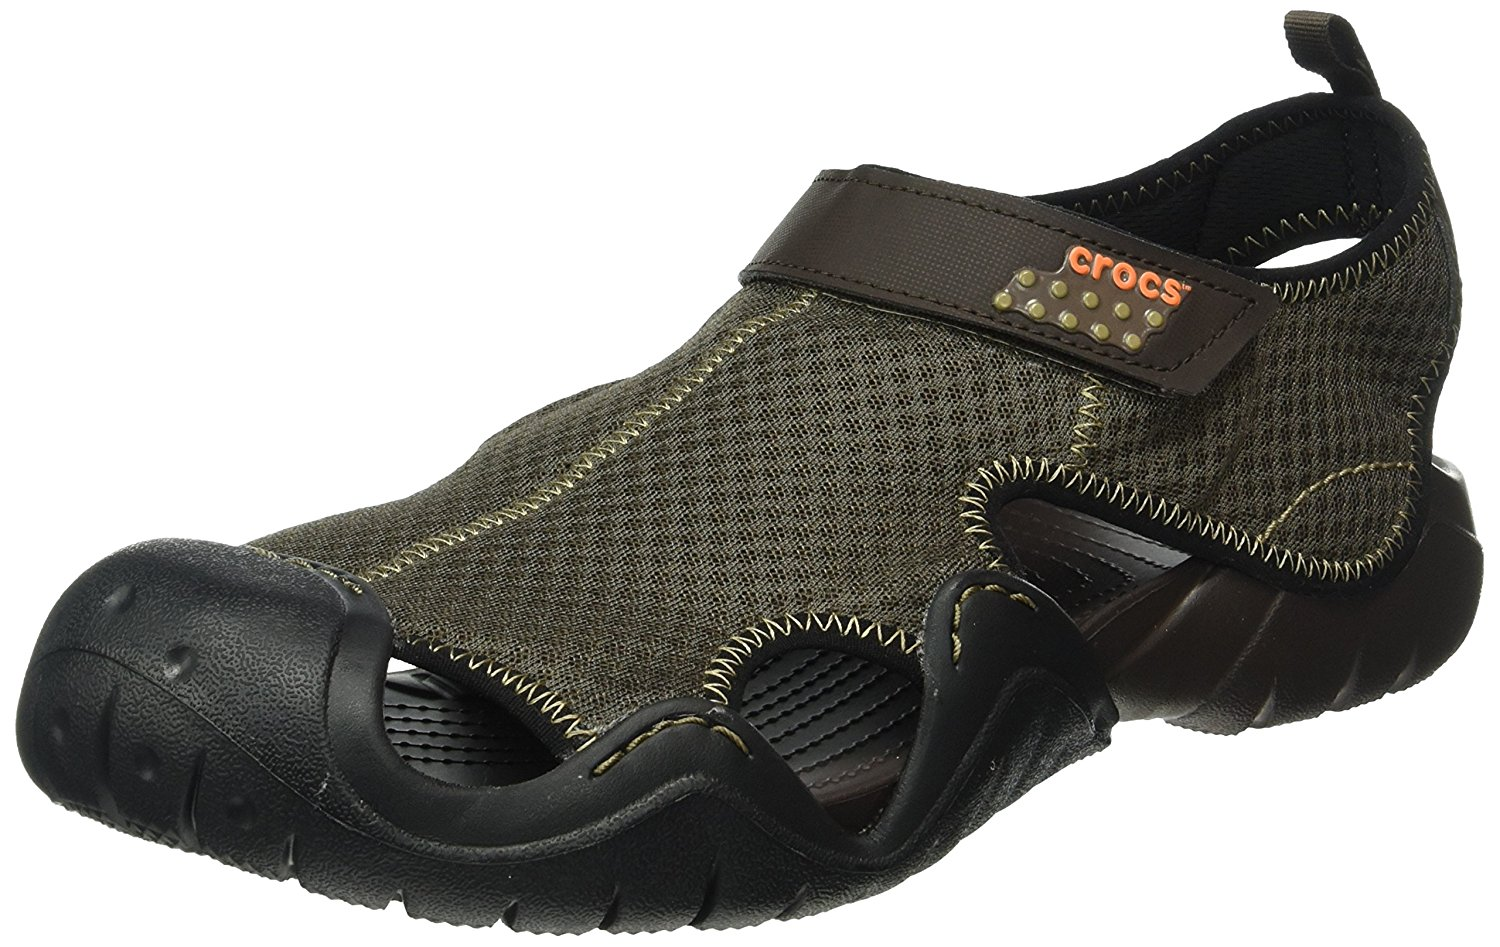 10. Crocs Swiftwater Sandal